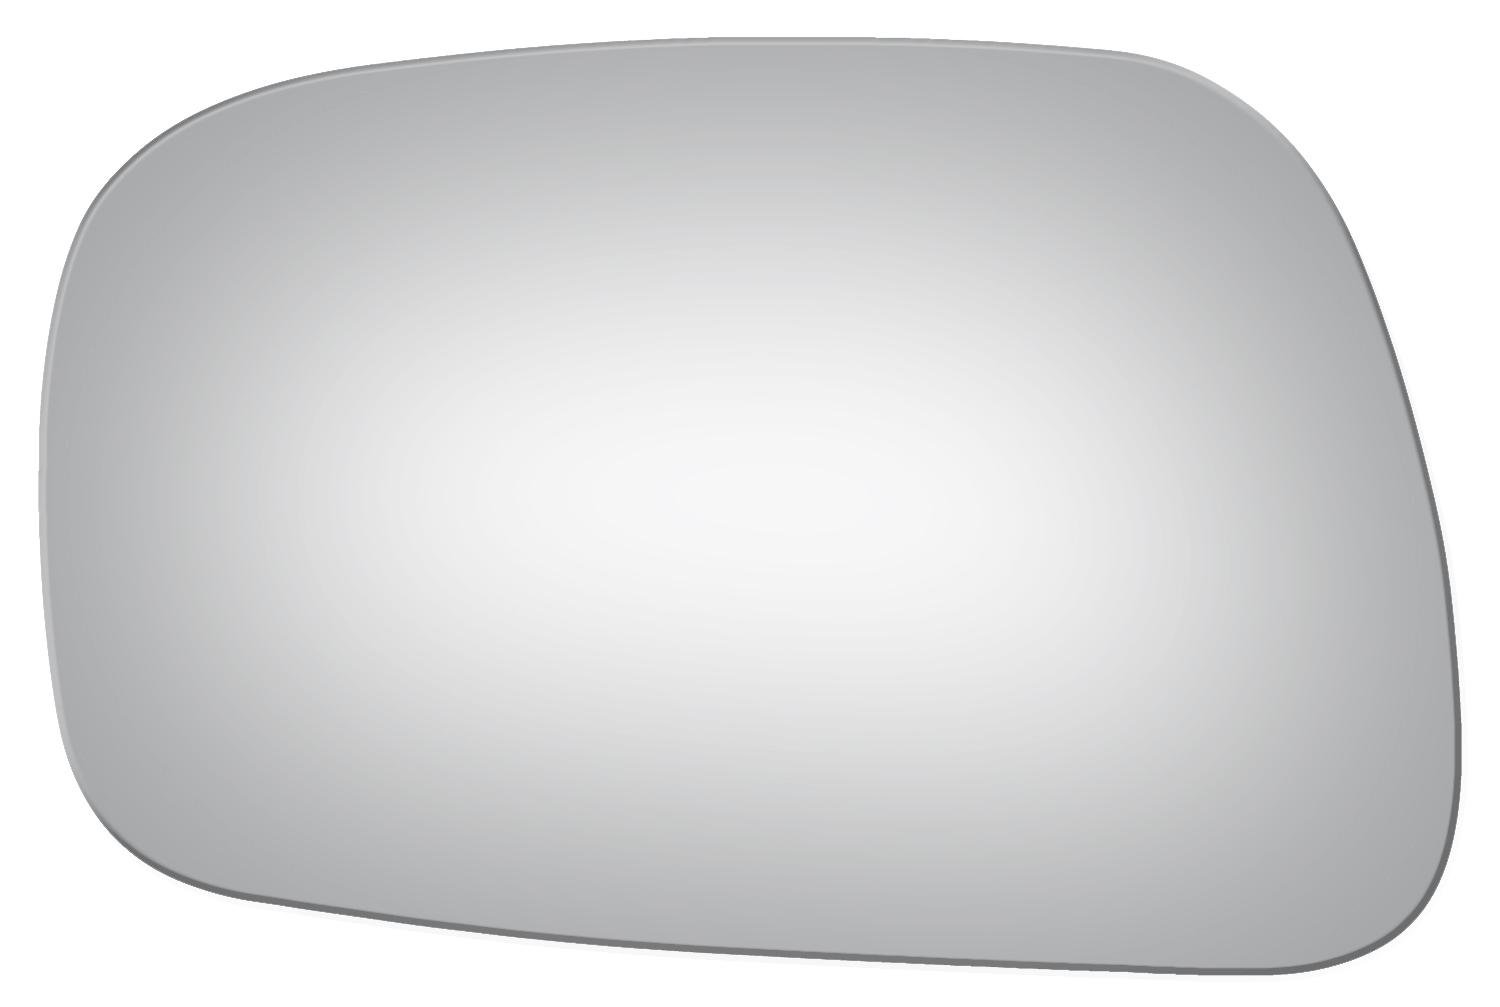 2002 - 2006 Toyota Camry Usa Built Flat Driver Left Side Replacement Mirror Glass Burco Burco 2942